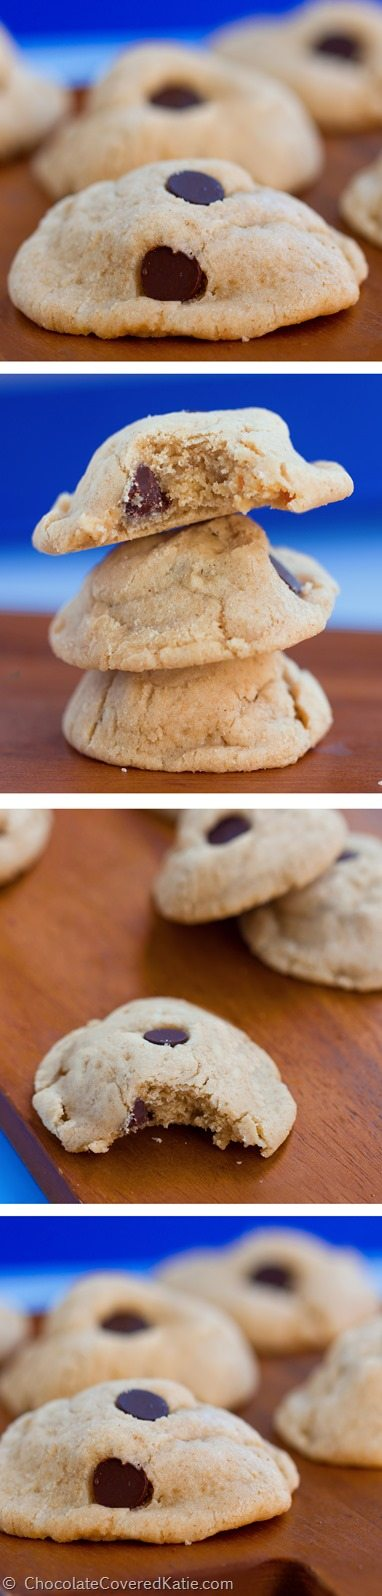 The lightest, softest, chewiest, and most delicious cookies you will ever put in your mouth. (Yes, seriously) https://chocolatecoveredkatie.com/2015/02/10/chocolate-chip-cream-cheese-cookies/ @choccoveredkt